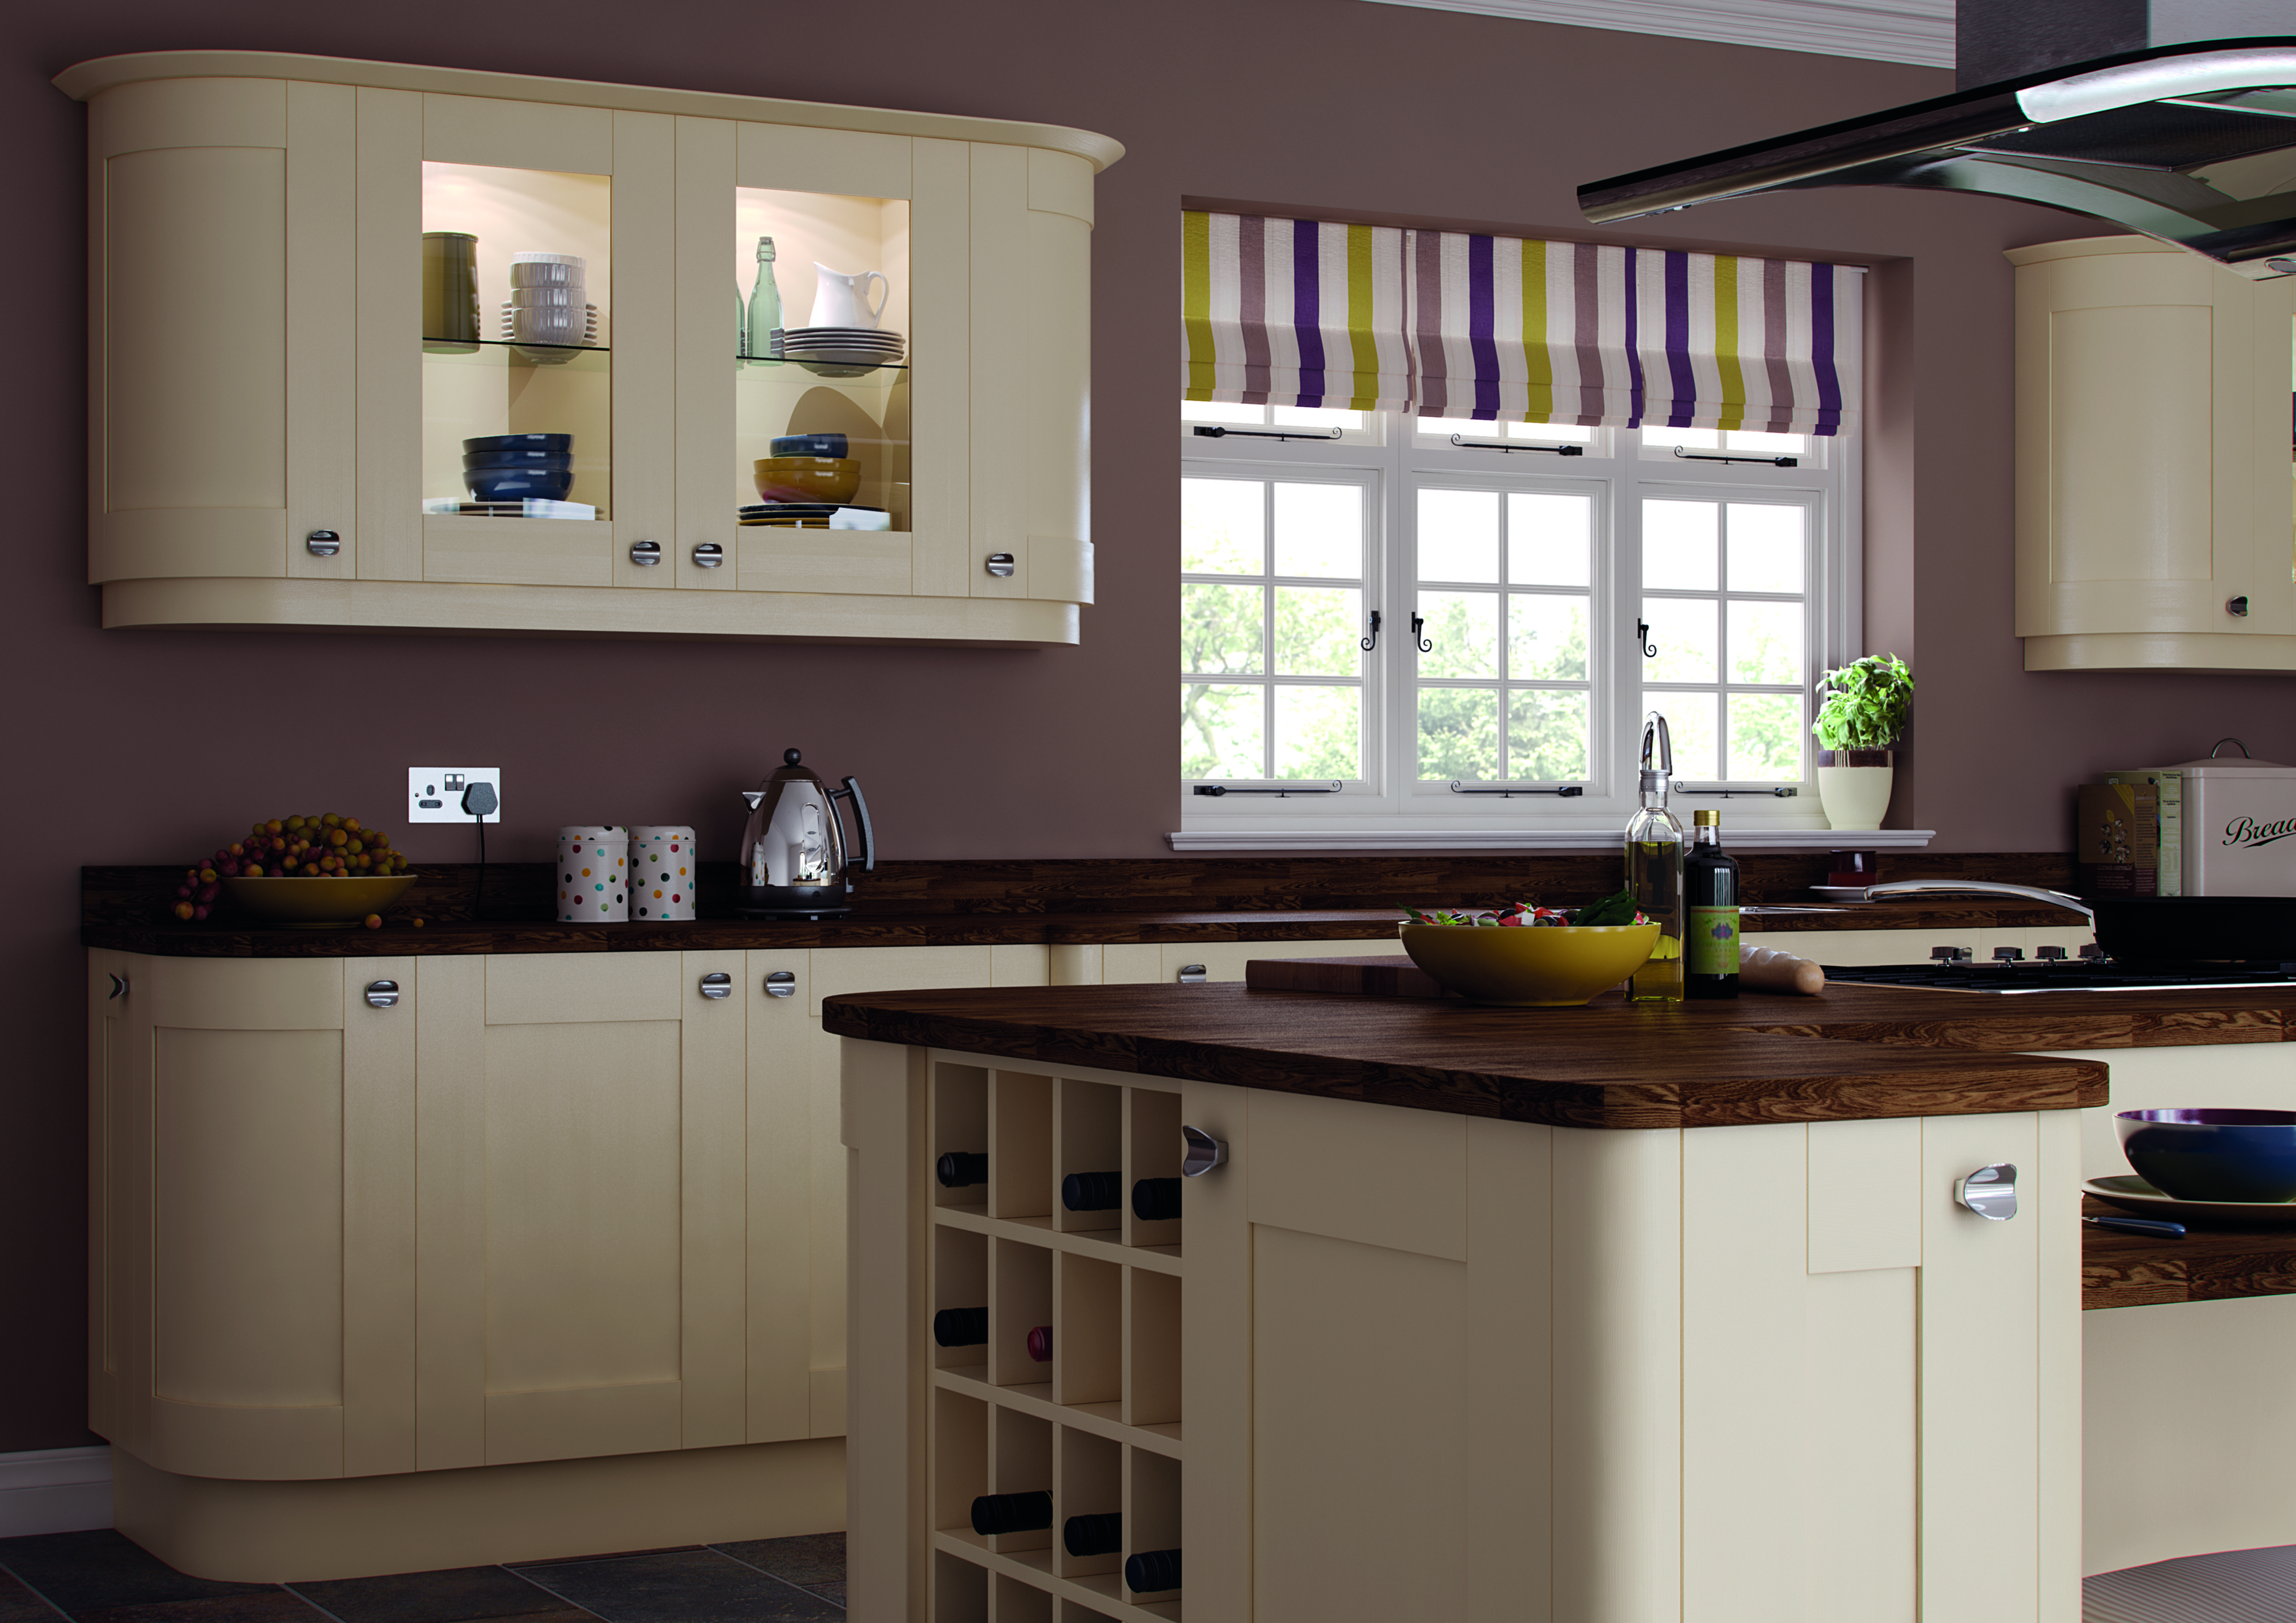 7 reasons to Buy Kitchen Cabinet Doors rather than a New